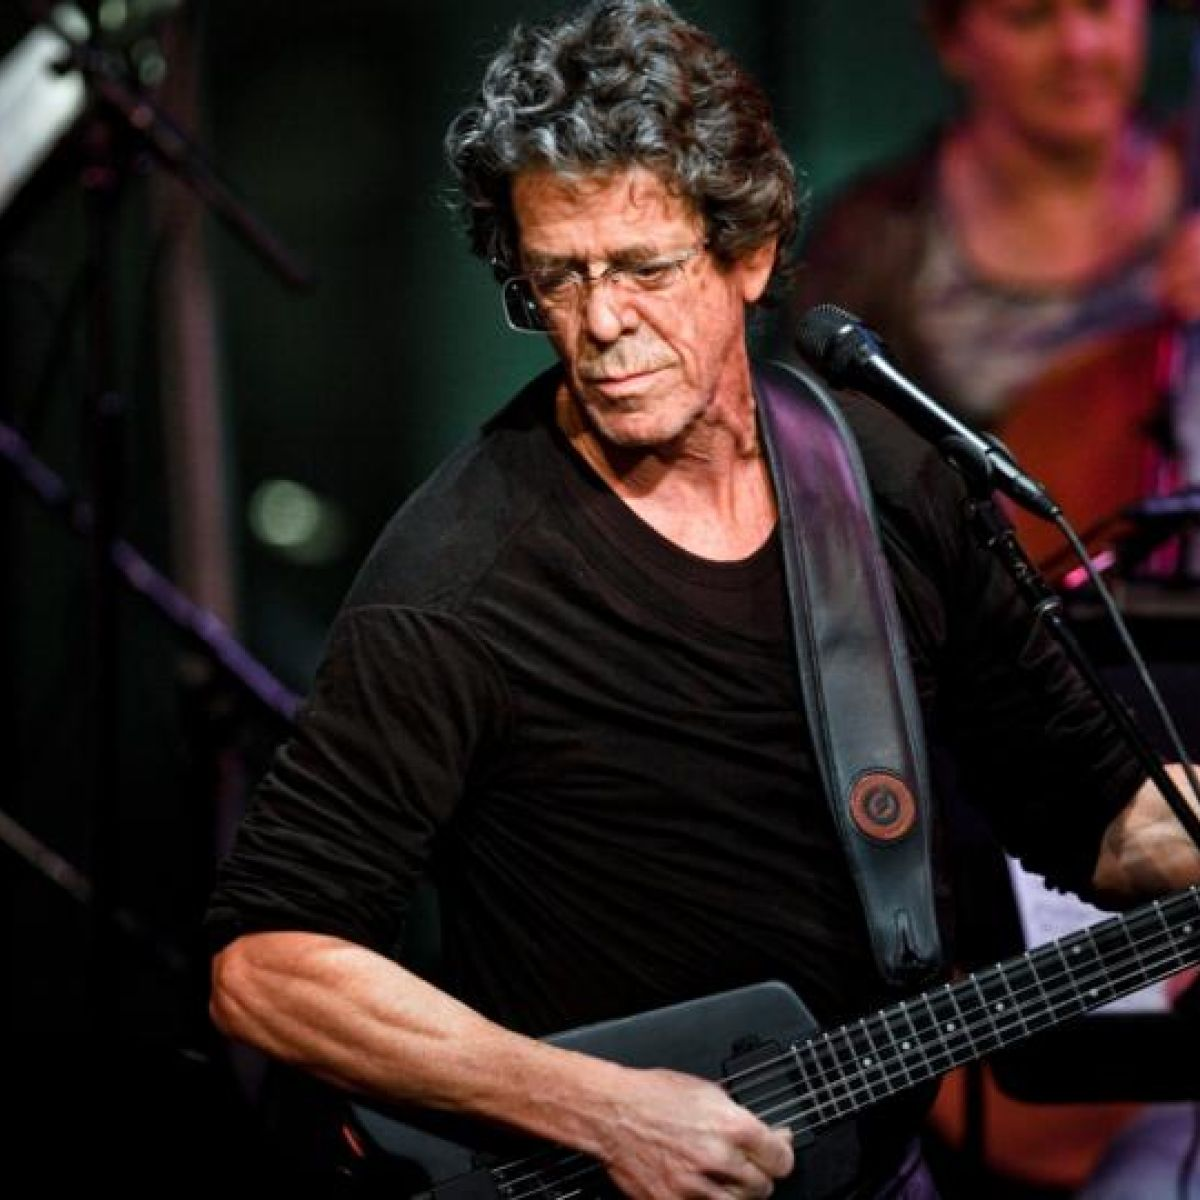 Cult musician Lou Reed who walked on wild side